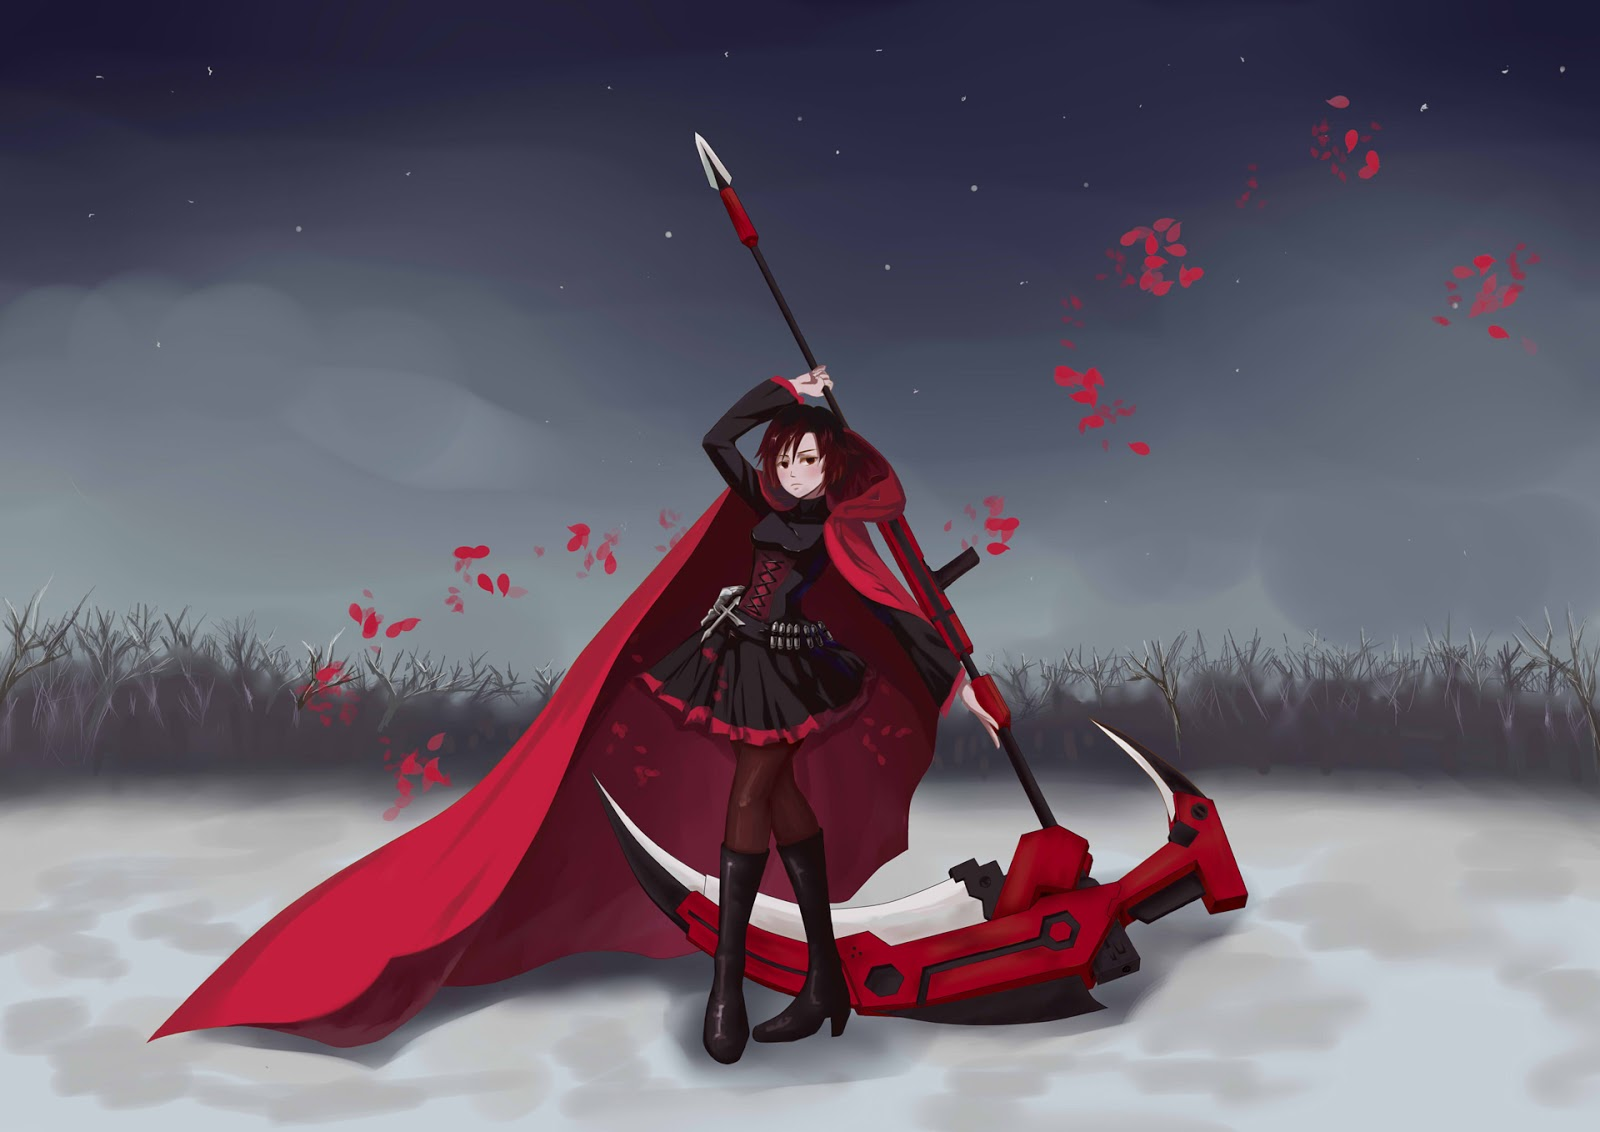 Rose RWBY Anime Girl Red Cape Death Scythe Black Dress HD Wallpaper 1600x1132